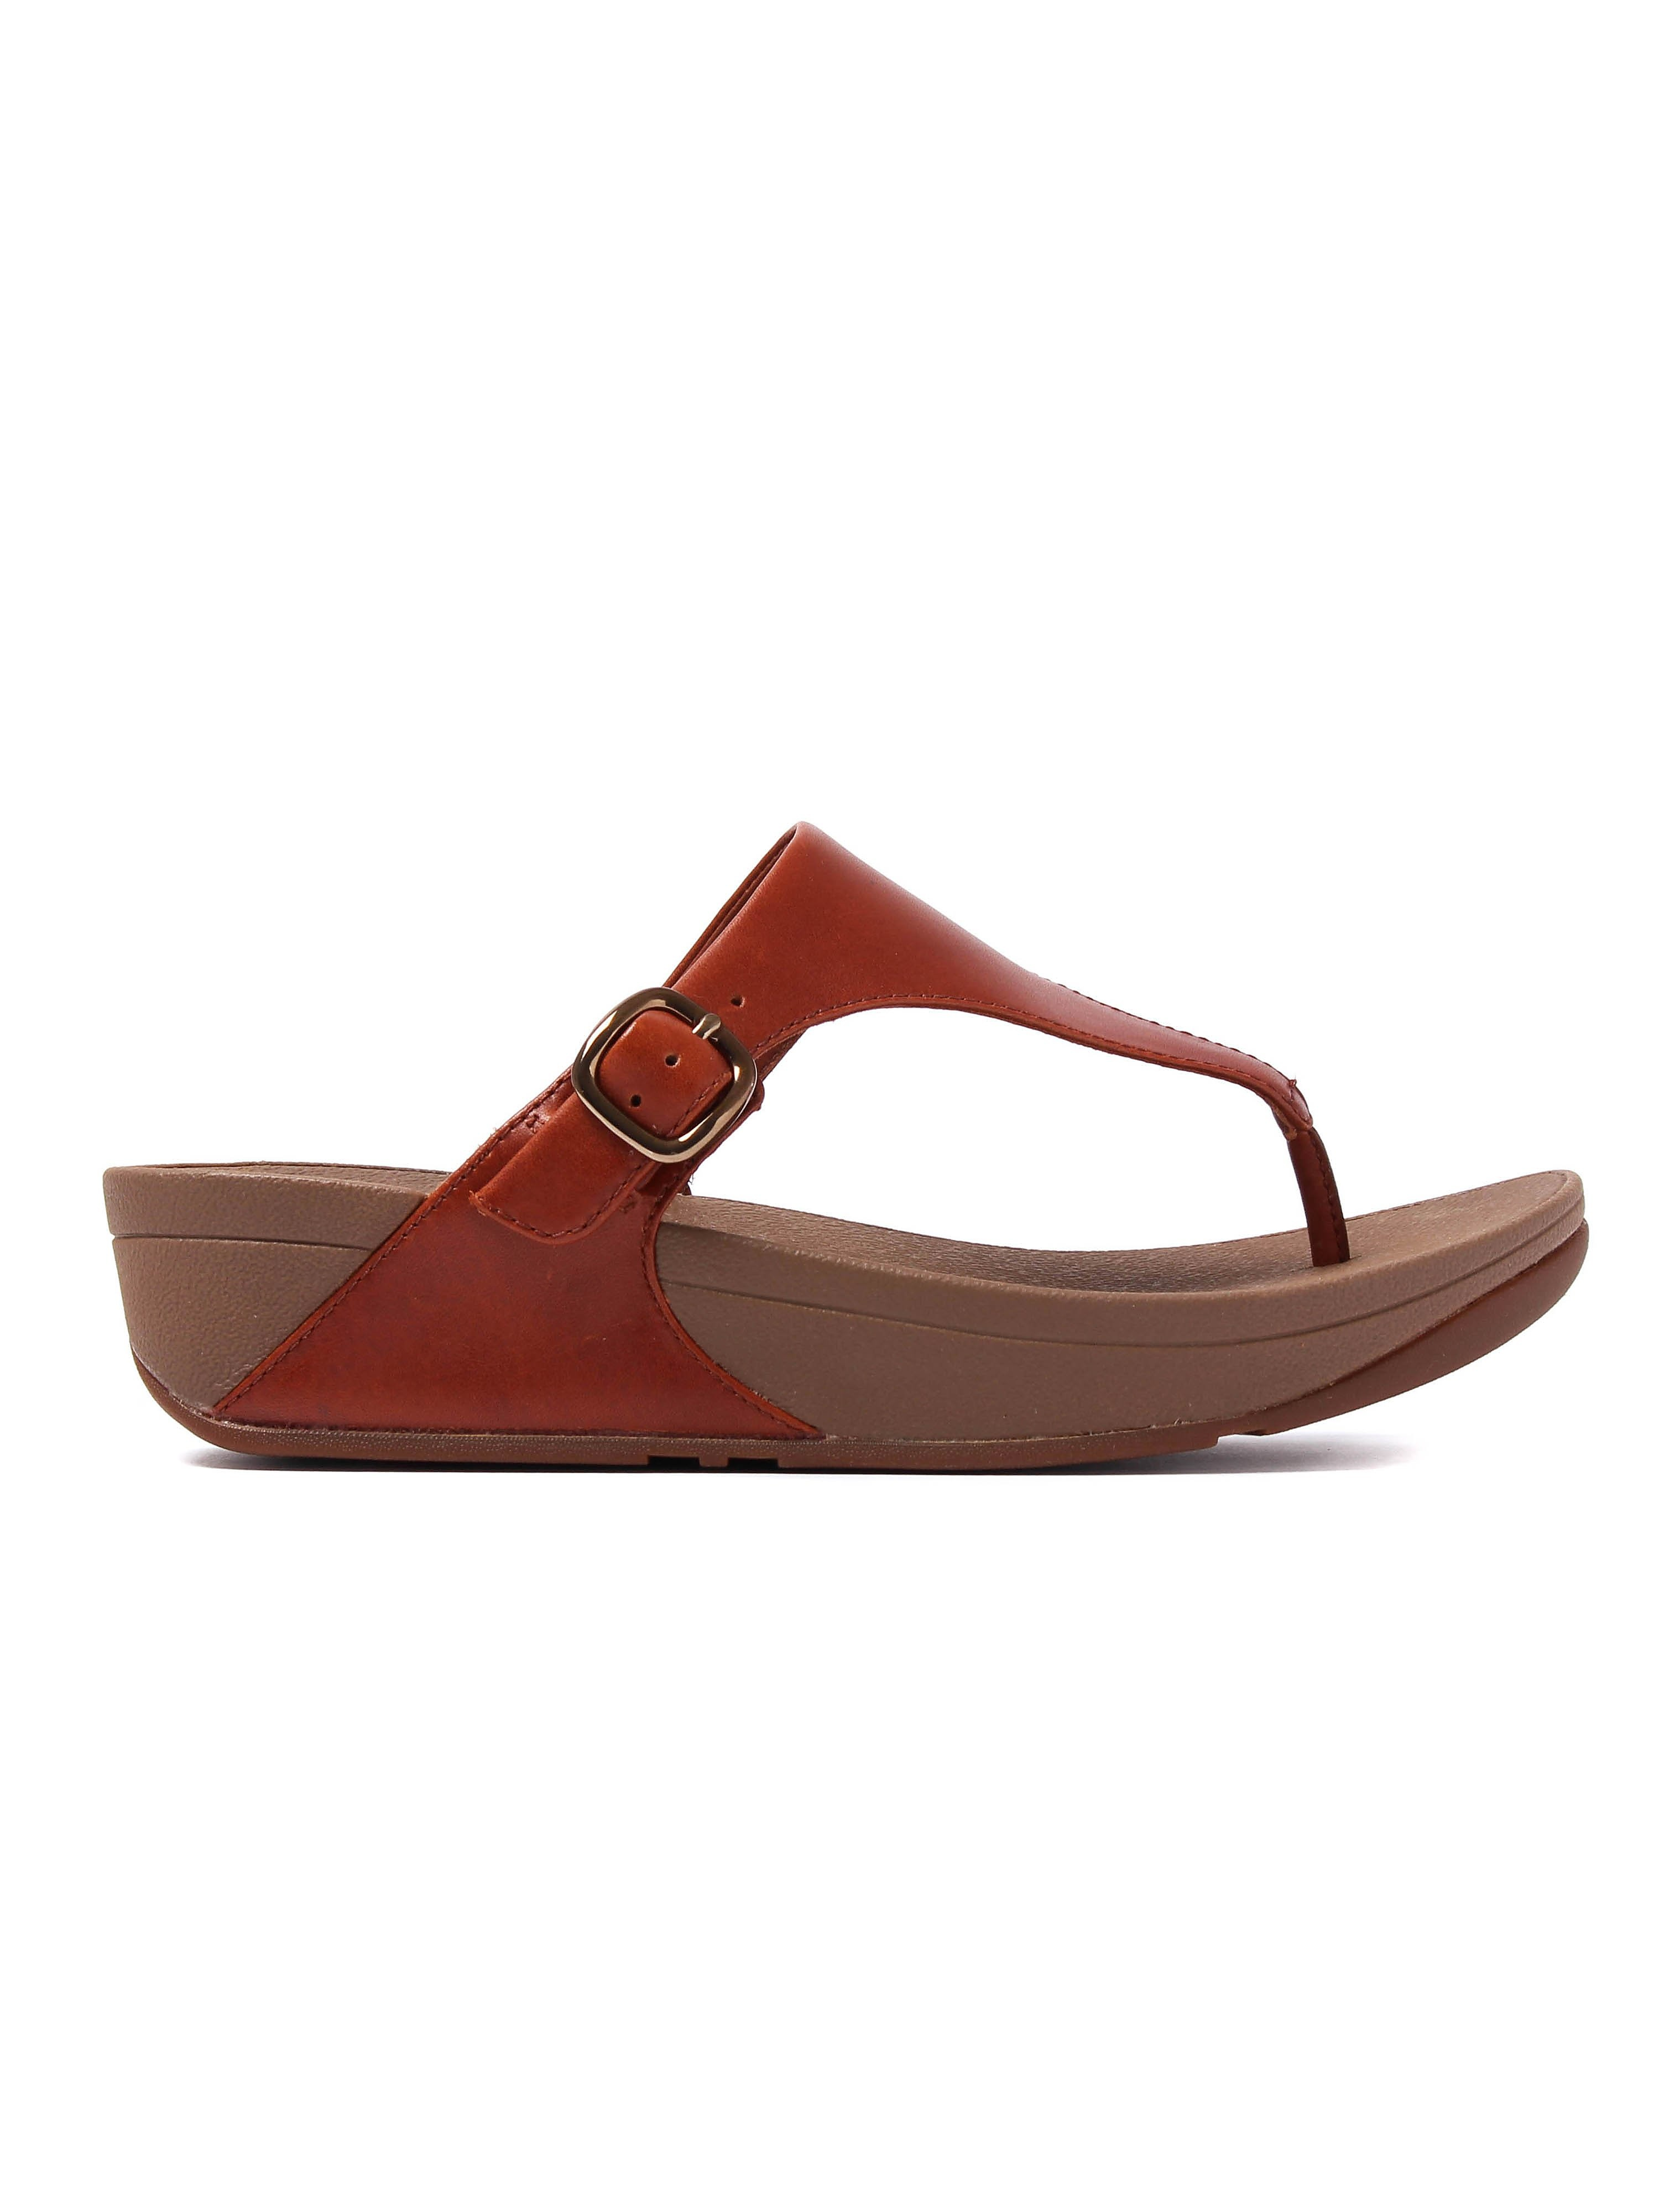 FitFlop Women's The Skinny Sandals - Dark Tan Leather